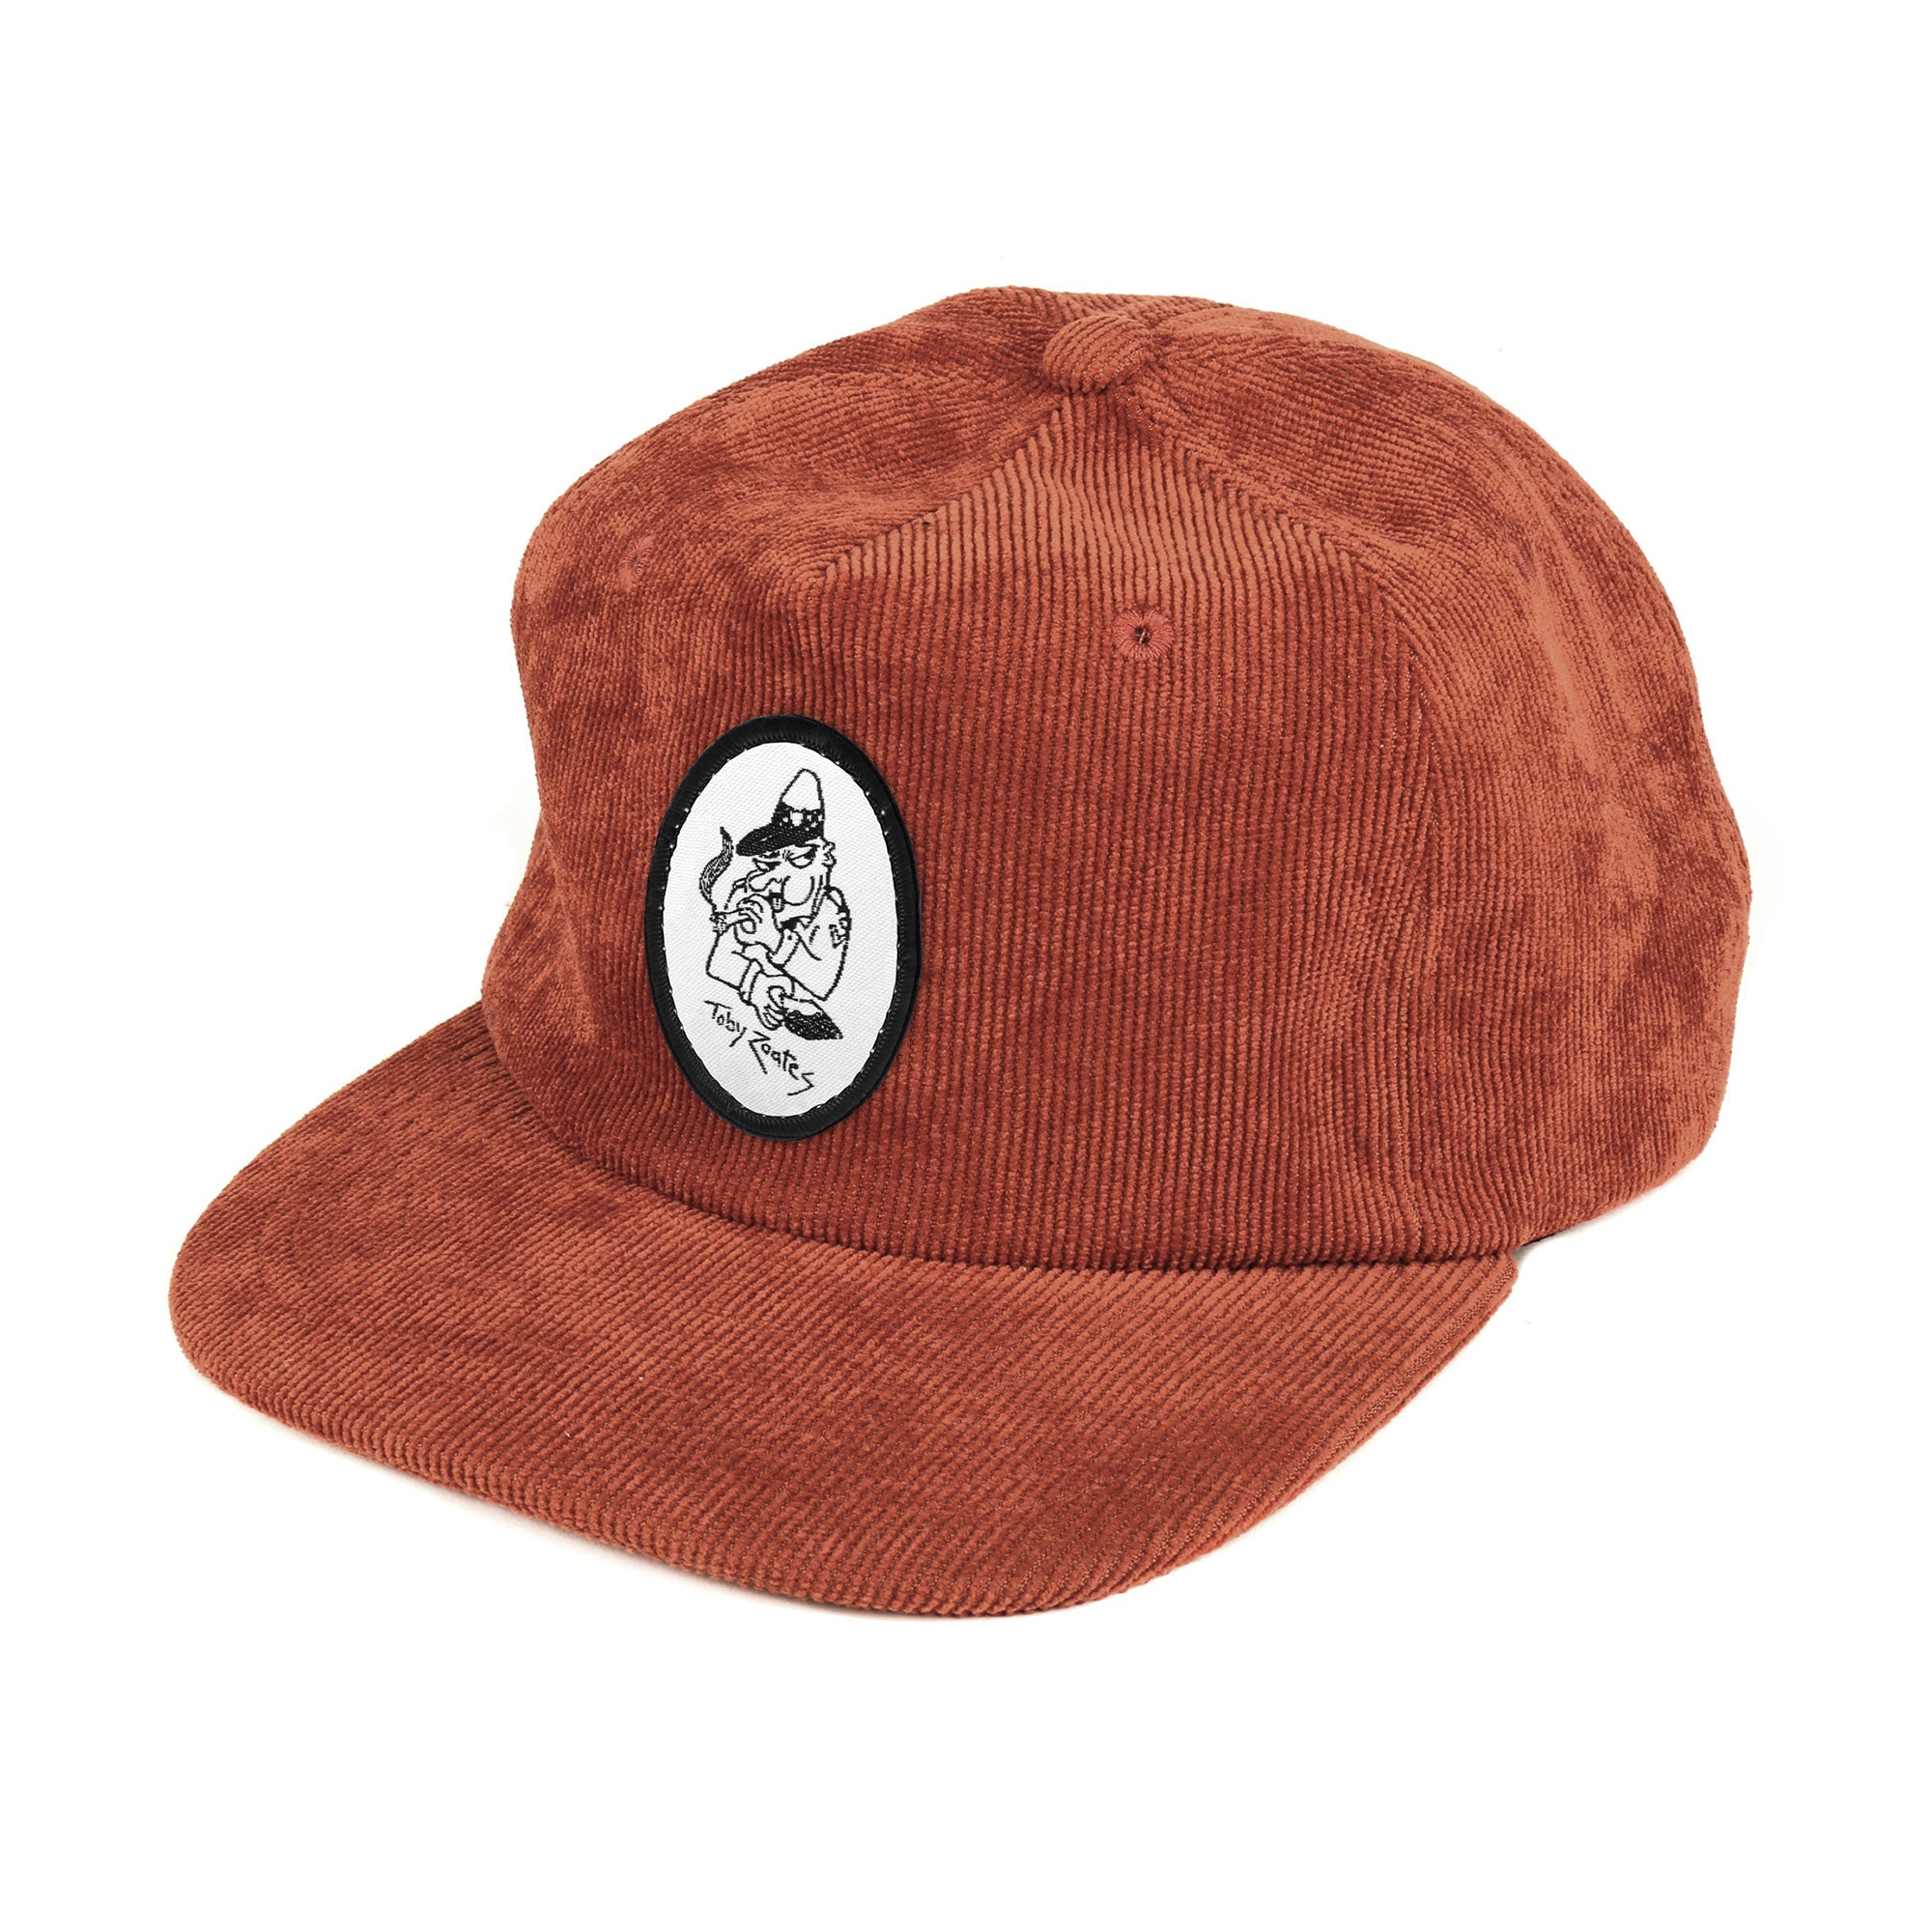 Passport Toby Zoates Copper 5 Panel Cap Product Photo #1